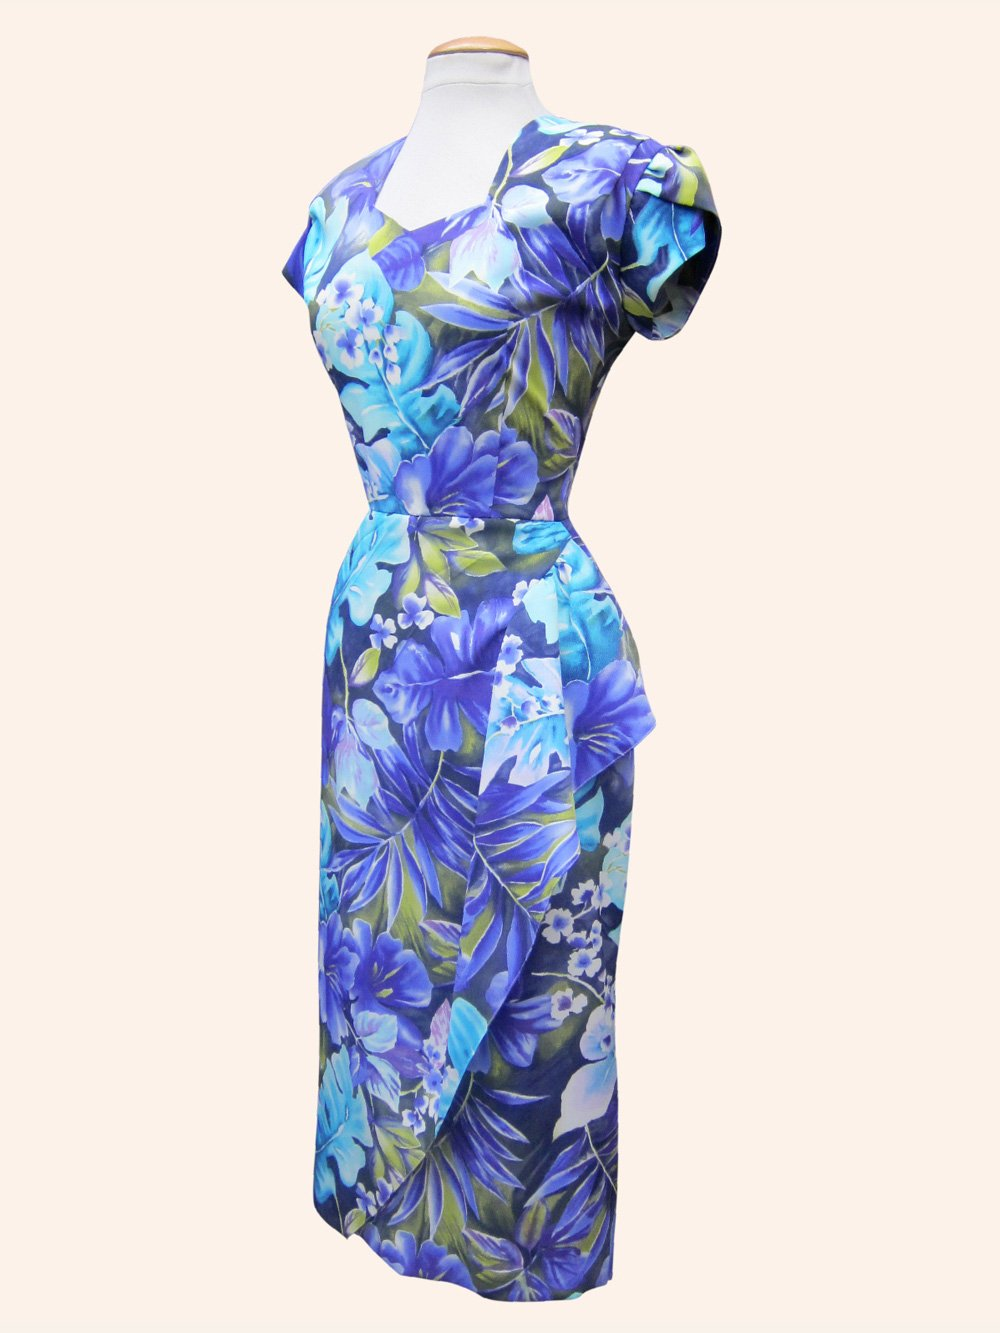 View all 1940s dress view all blue 1940s dress view all end of